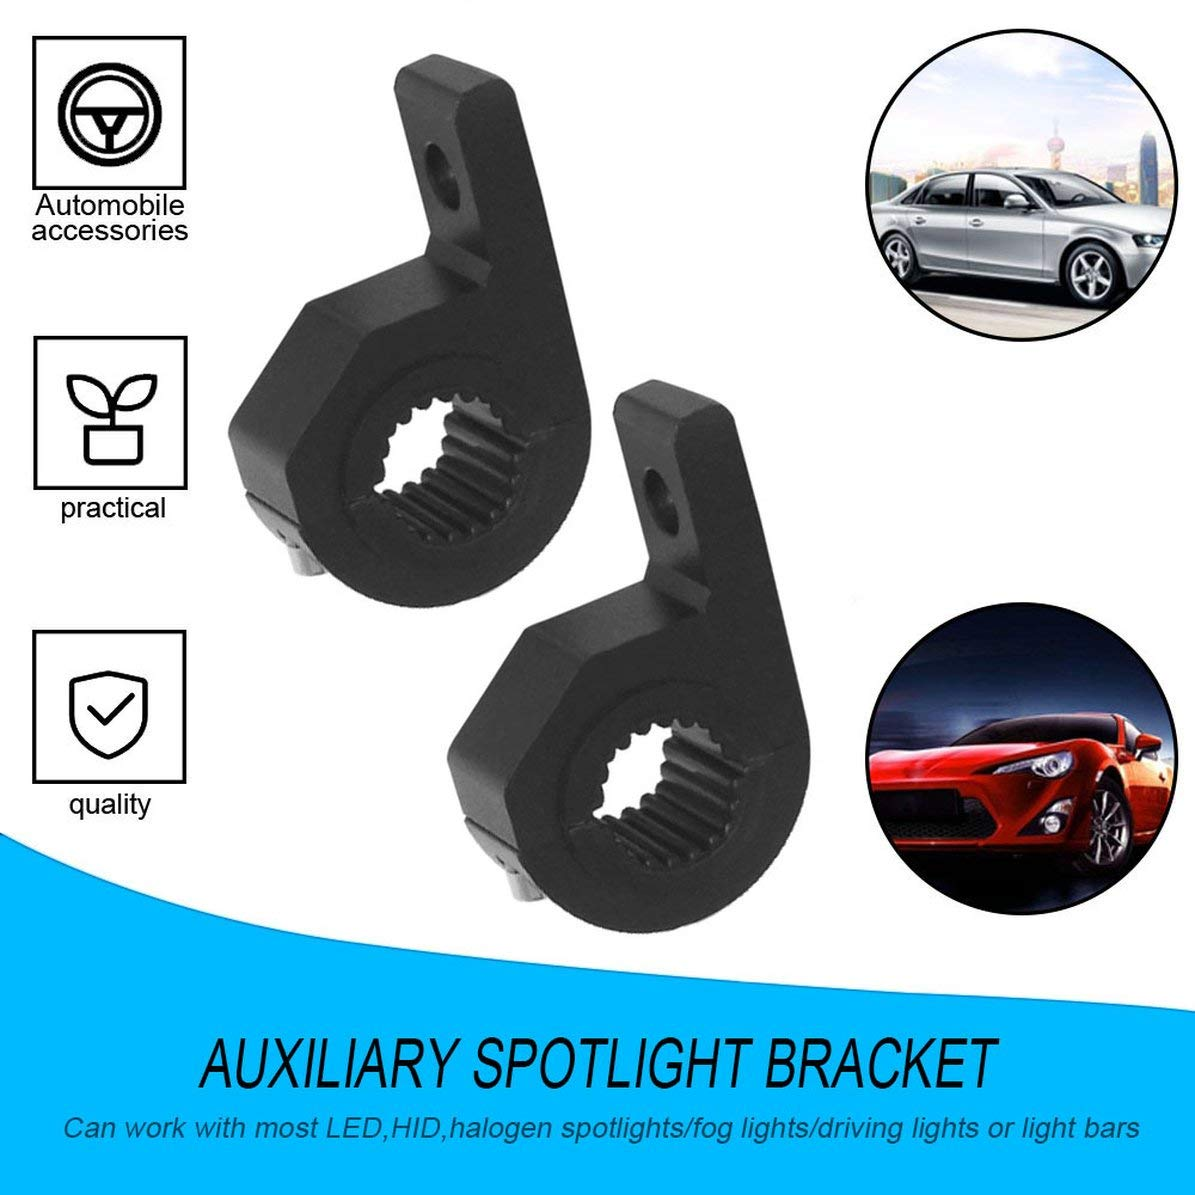 2pcs Bull Bar Mount Bracket Brouillard Conduite Lumi/ère Spotlight Support De Pince Universelle 15-30mm pour Voiture Moto Crash Bar Garde noir WEIWEITOE